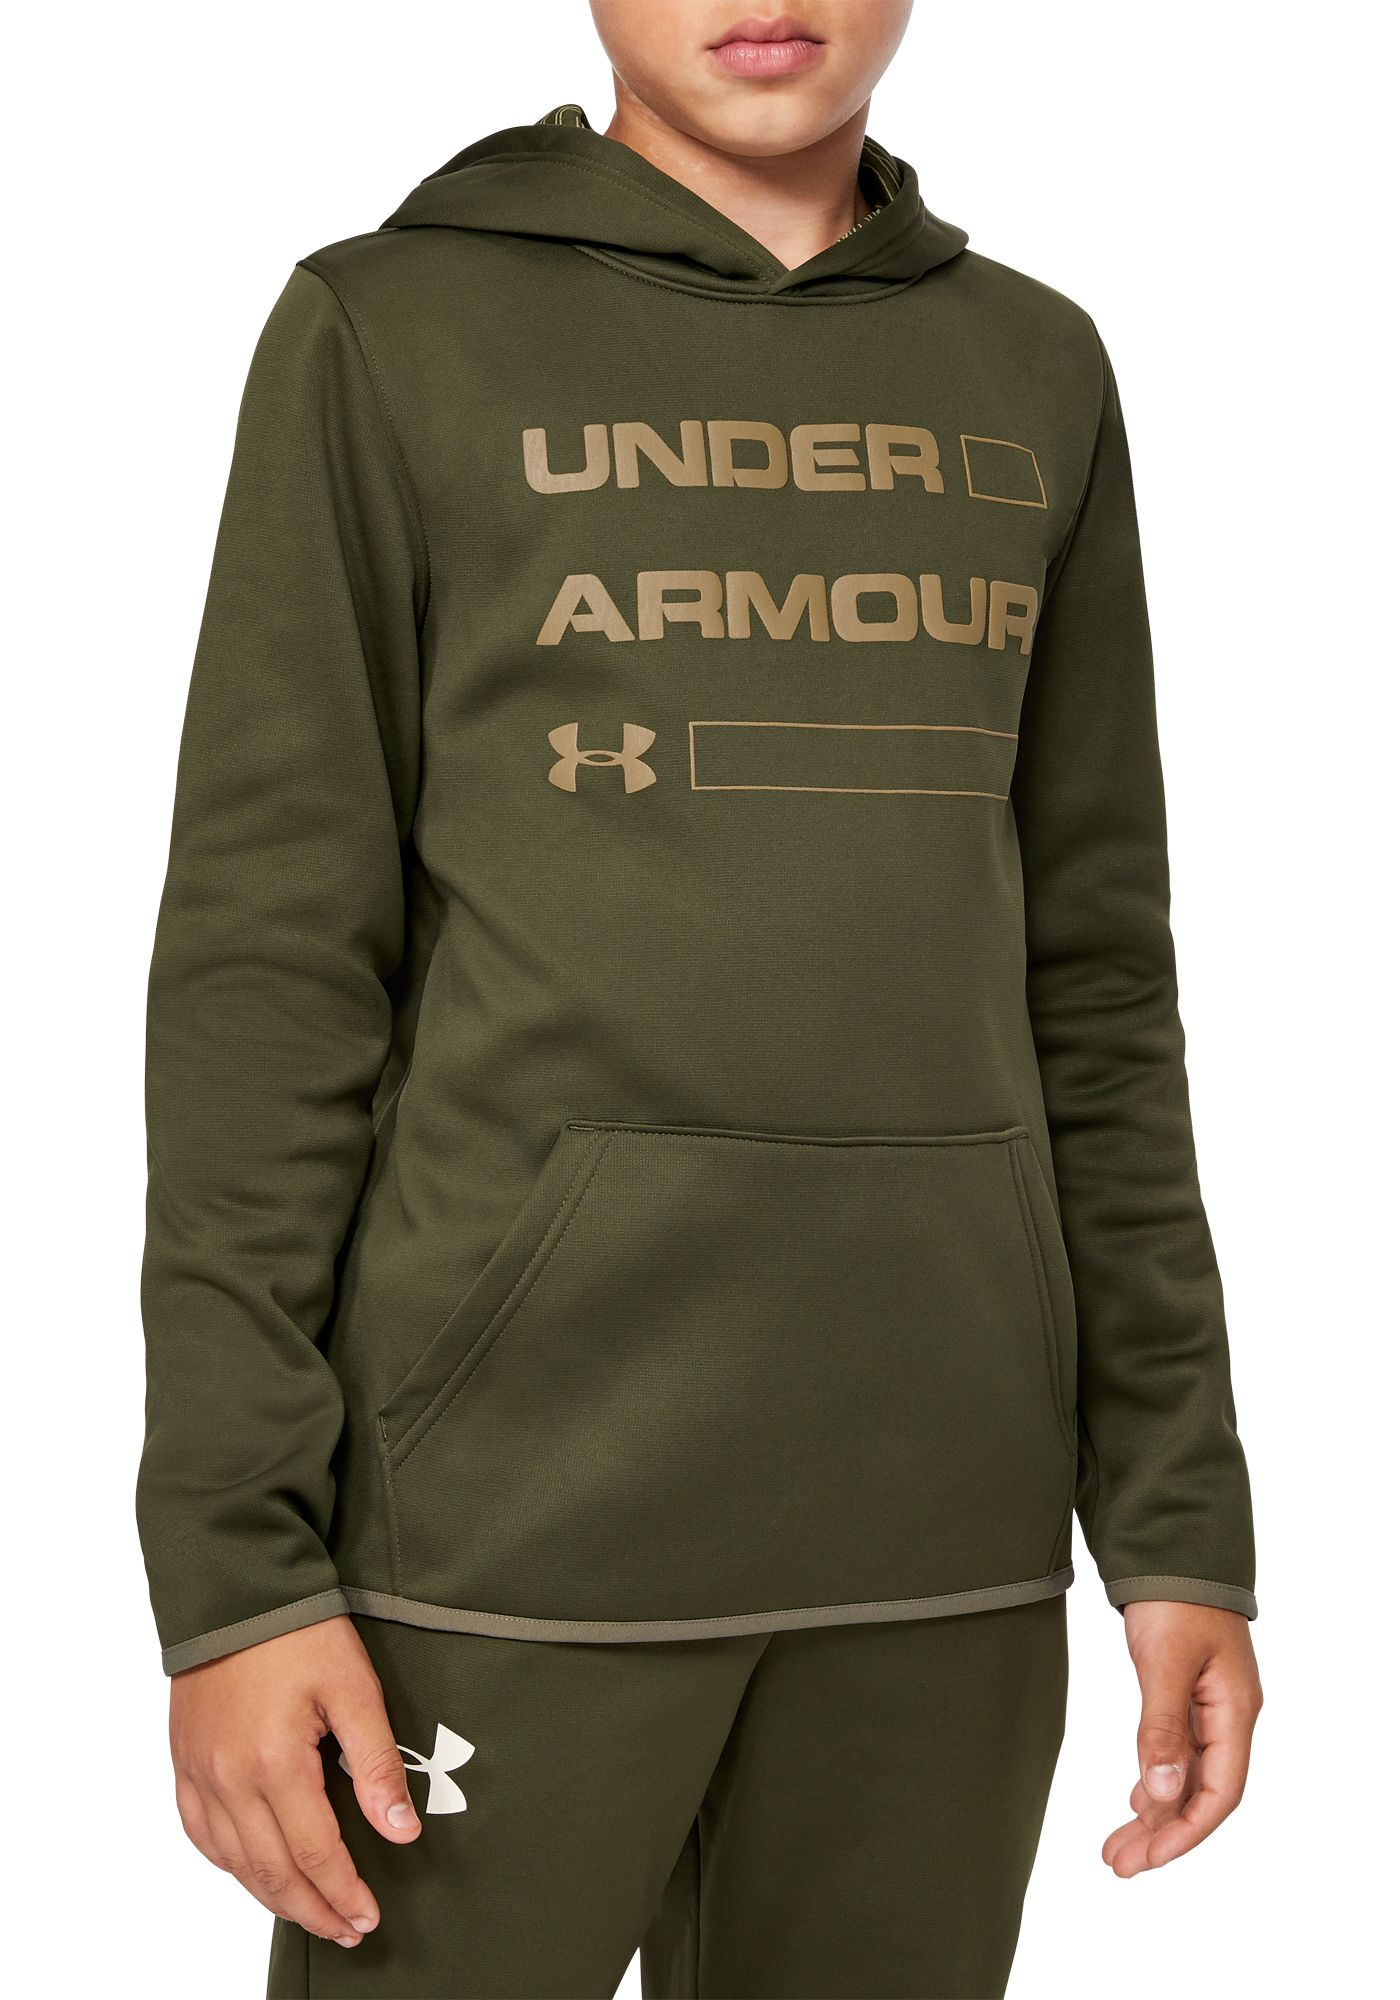 Under Armour Boy's Armour Fleece Wordmark Hoodie